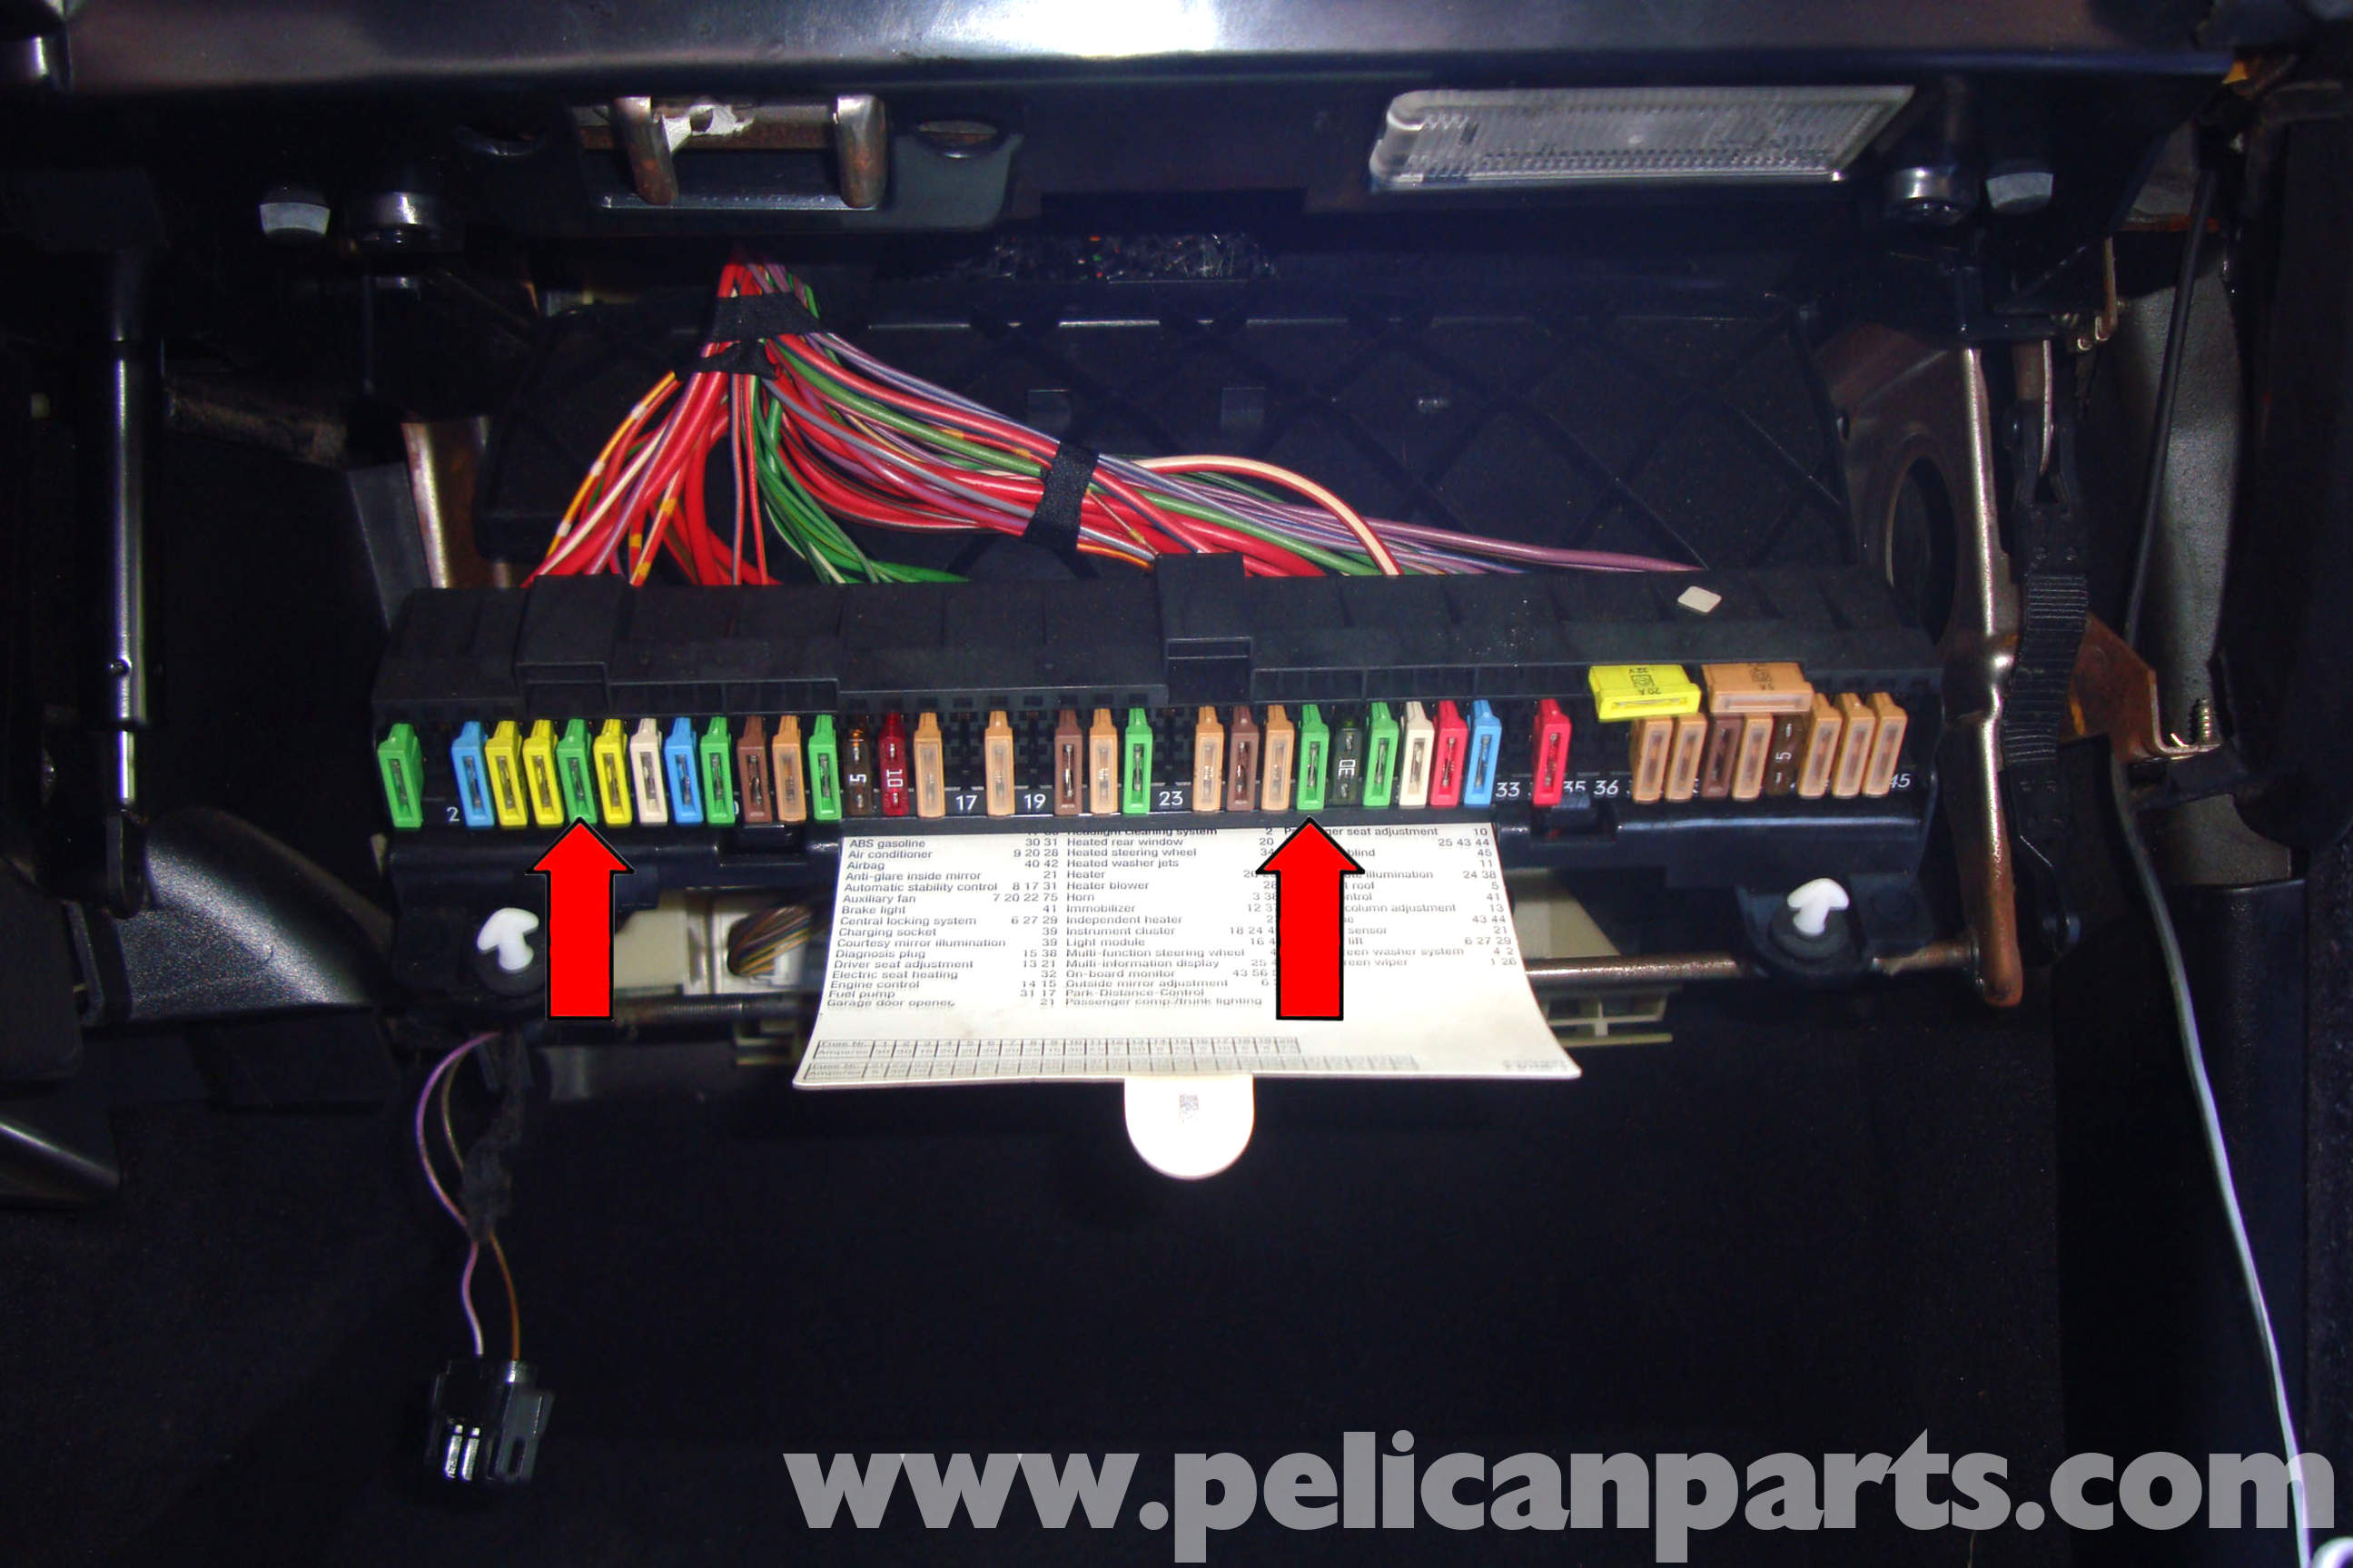 02 Bmw 330ci Fuse Box Diy Enthusiasts Wiring Diagrams 2002 330xi Diagram E39 5 Series Power Window Testing 1997 2003 525i 528i 530i 540i Pelican Parts Convertible Posotive Wire